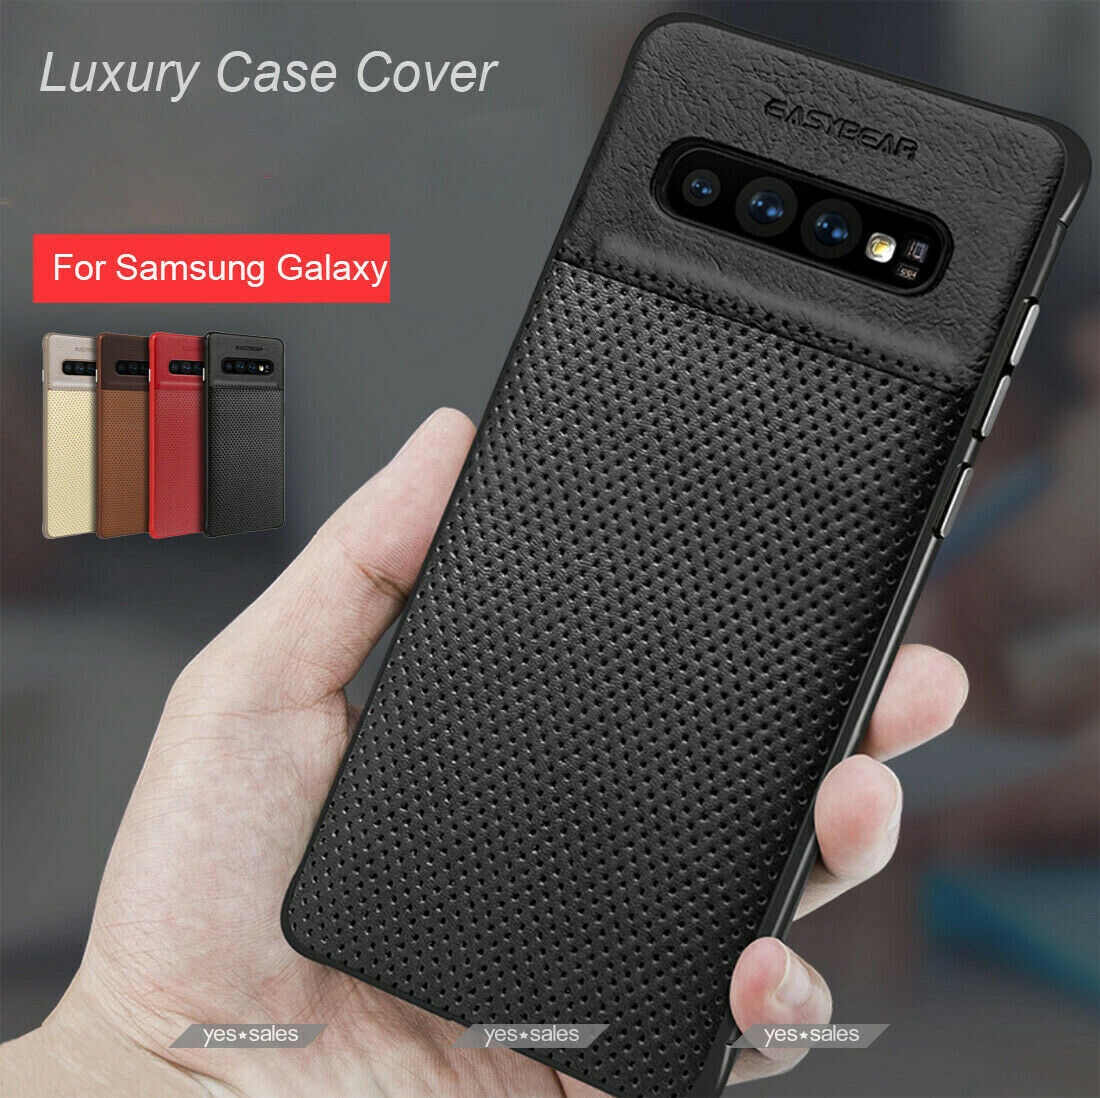 on sale 7b9be d8301 Fits Samsung Galaxy Luxury Leather Ultra-Thin Slim Hard Protective Case  Cover